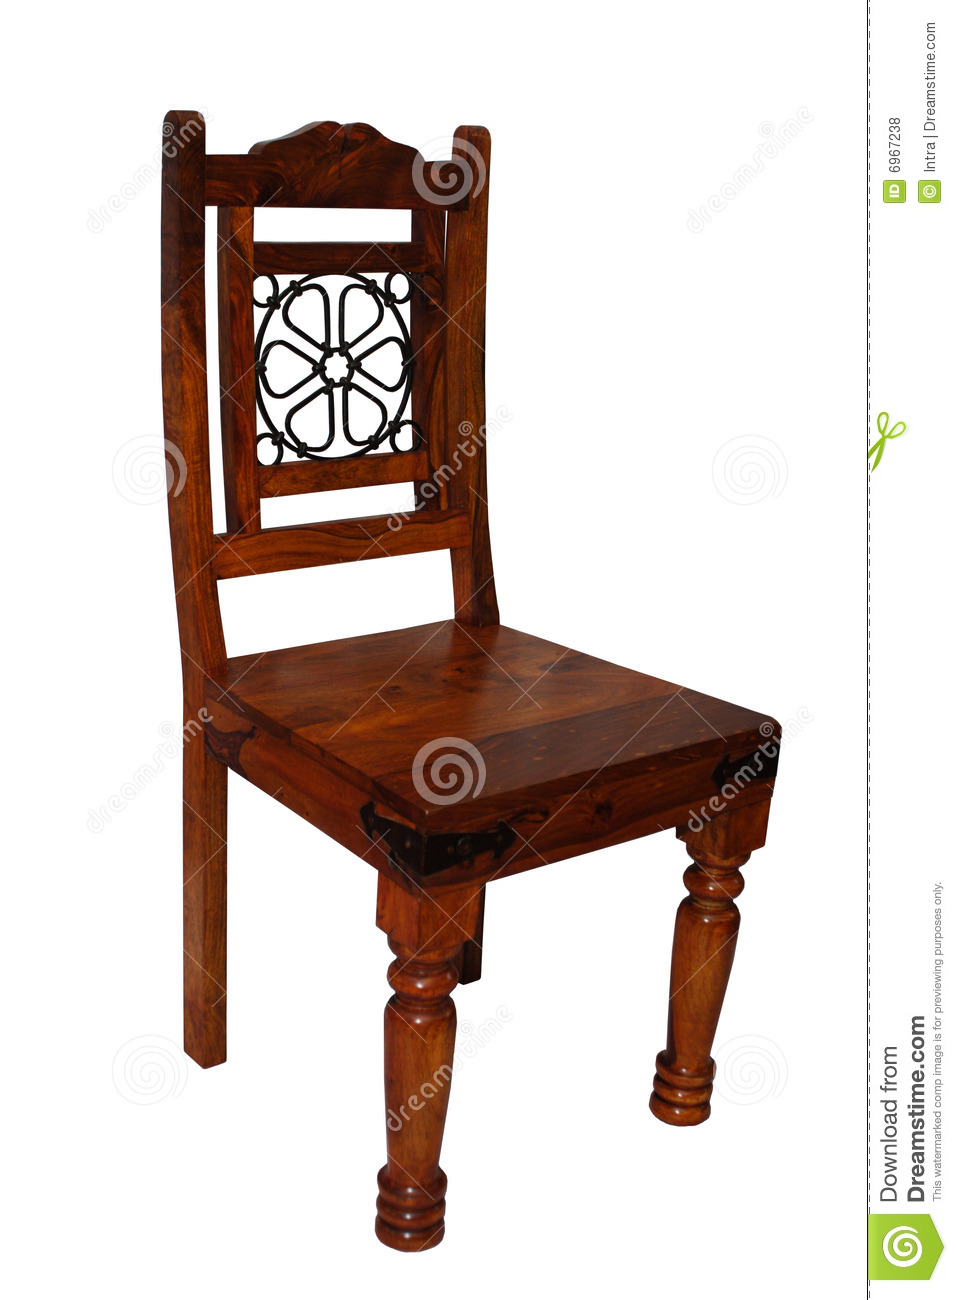 Wooden easy chair designs - Easy Chair Wood Designs Royalty Free Stock Photo